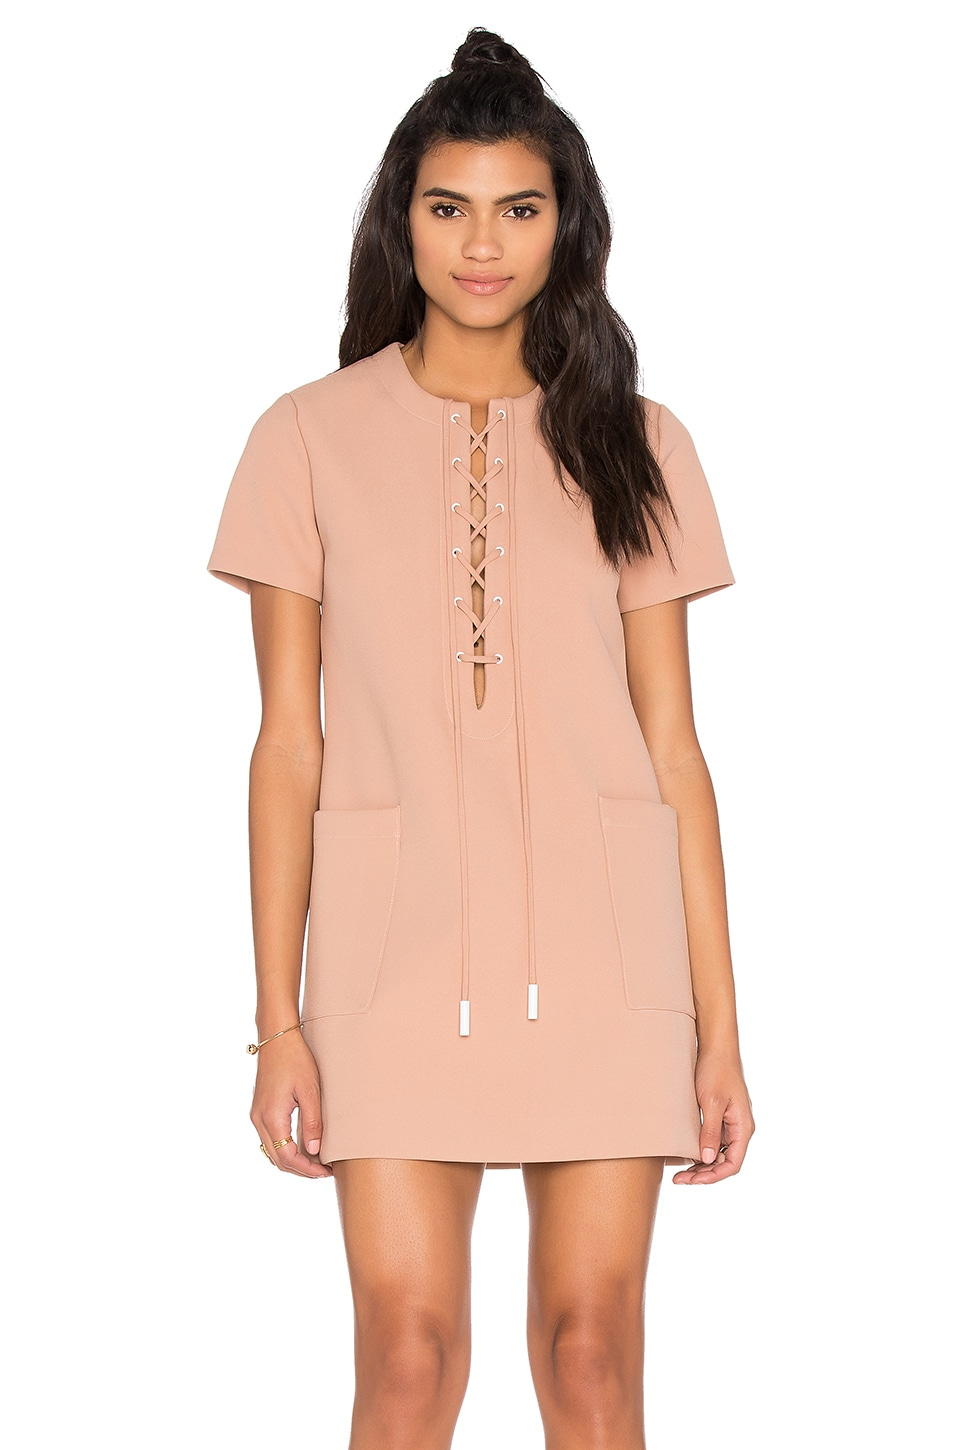 KENDALL + KYLIE Lace Up Safari Dress in Sepia